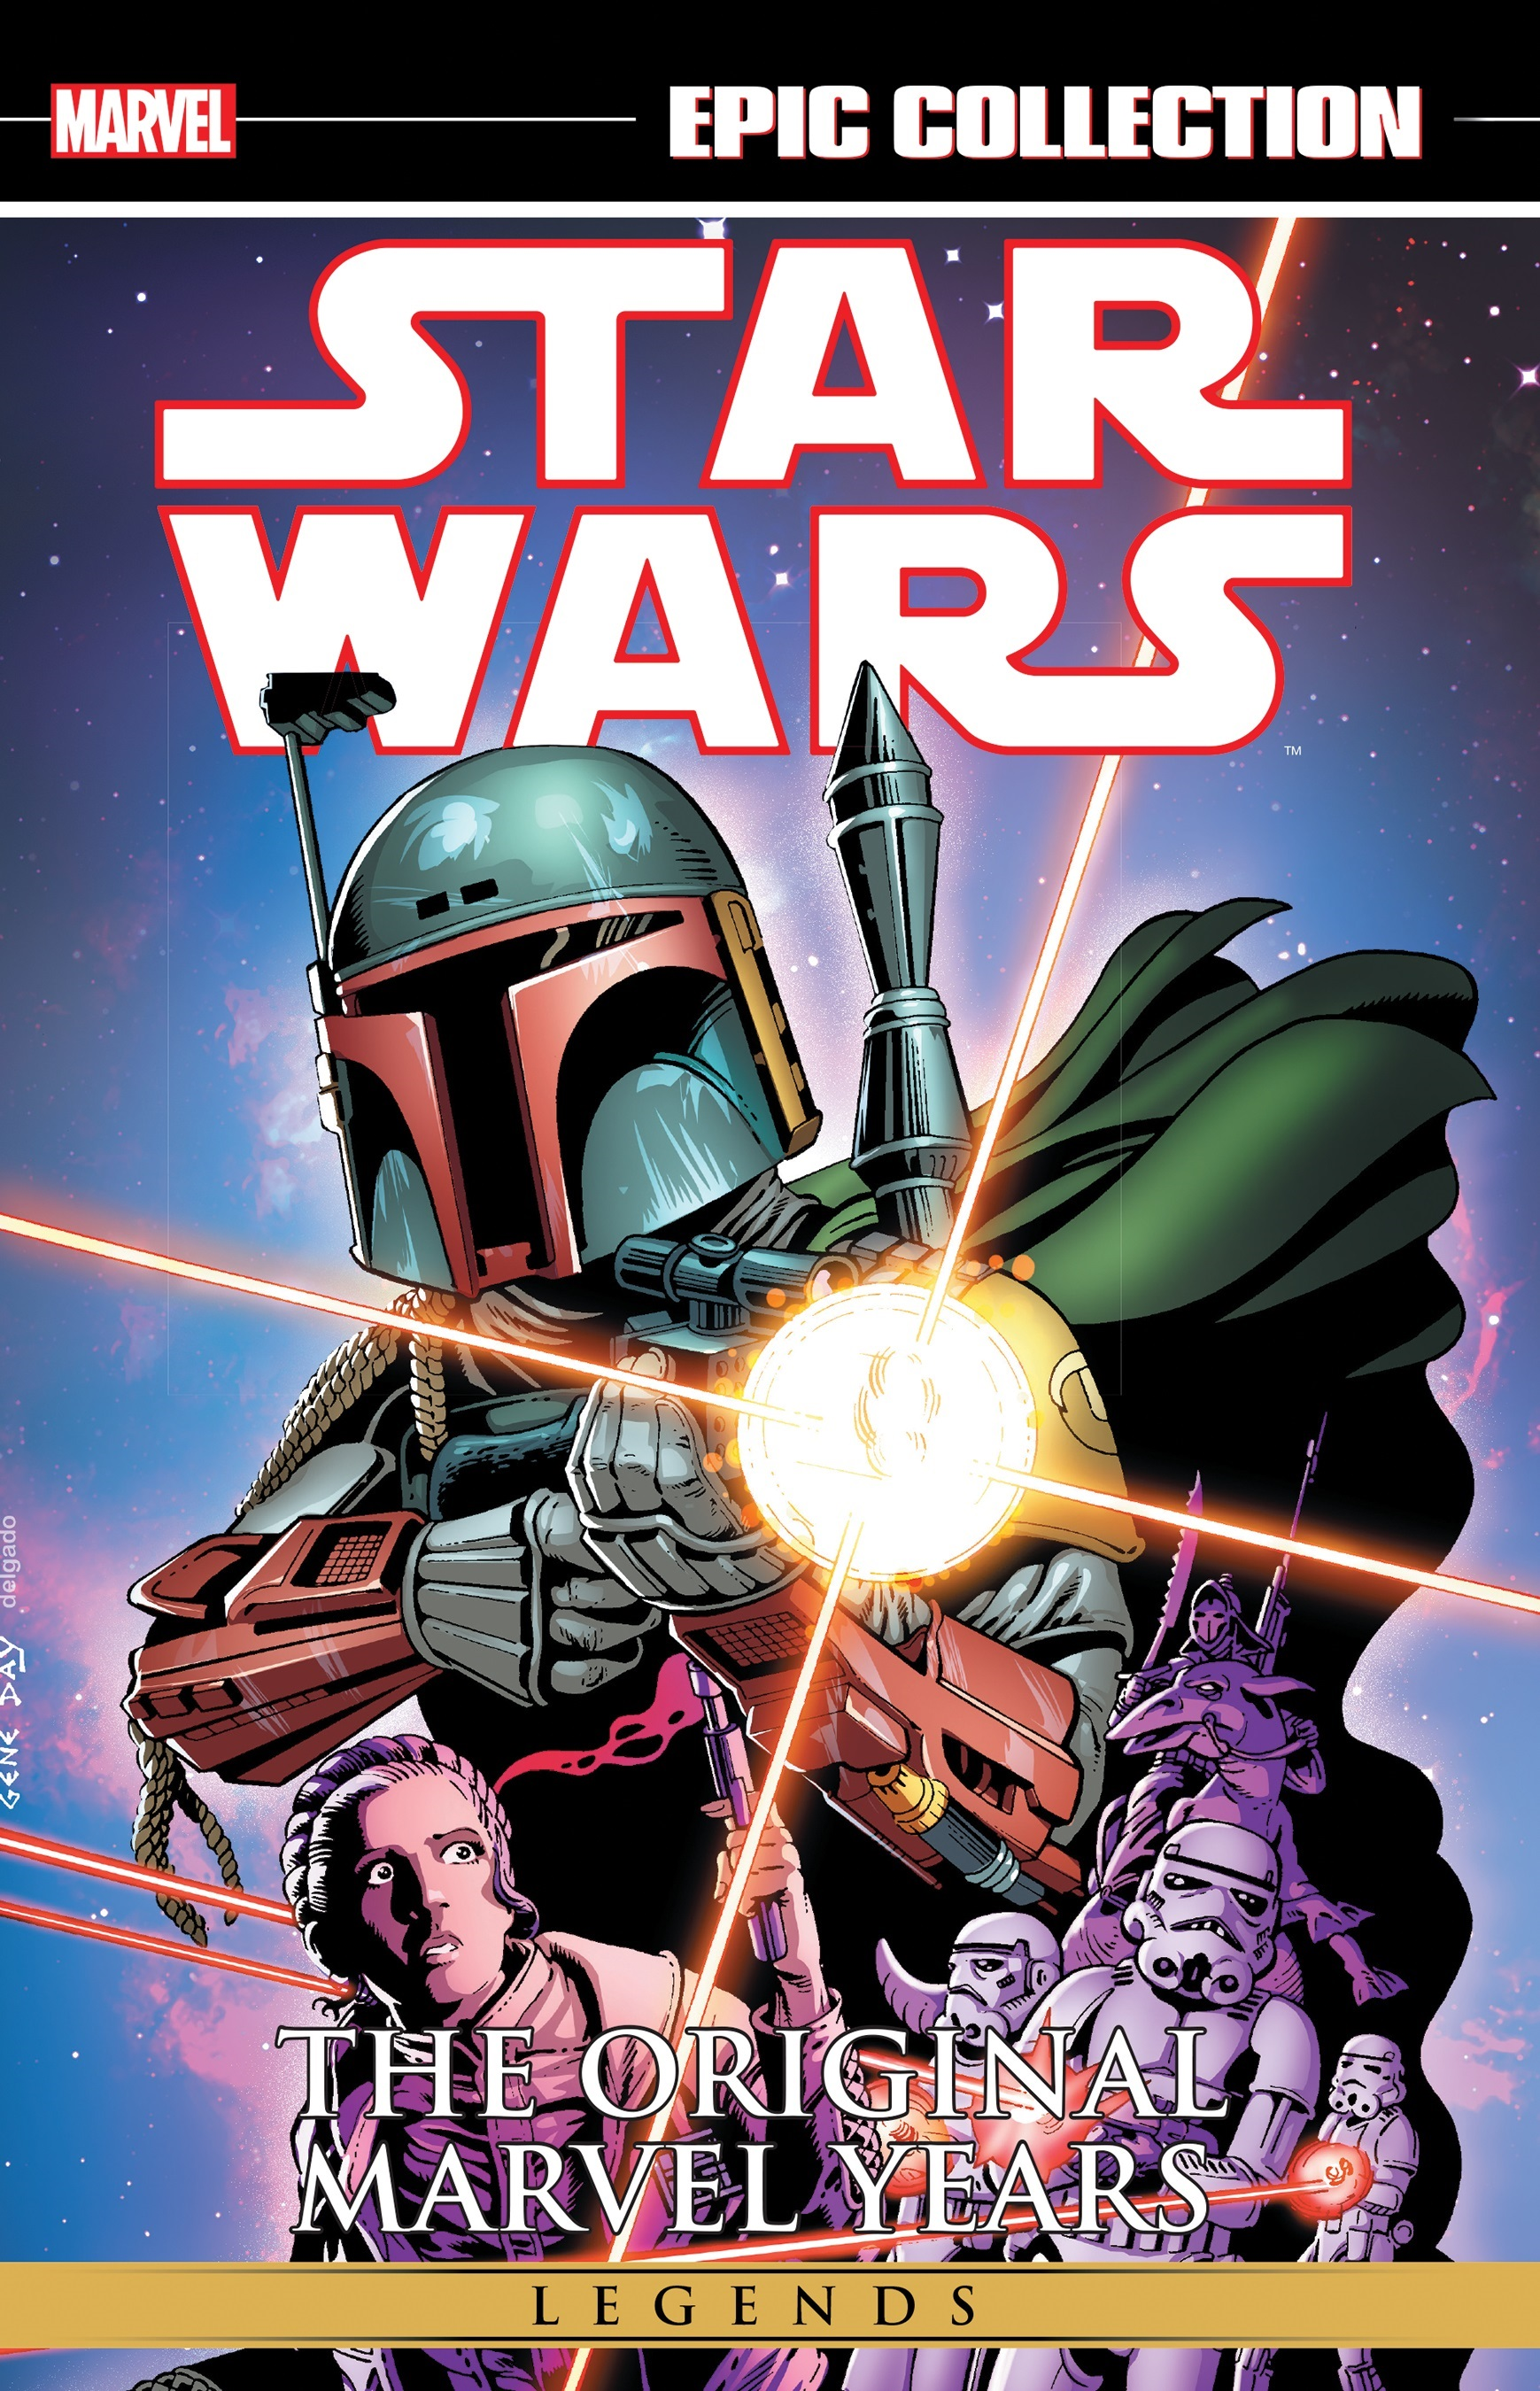 STAR WARS LEGENDS EPIC COLLECTION: THE ORIGINAL MARVEL YEARS VOL. 4 TPB (Trade Paperback)